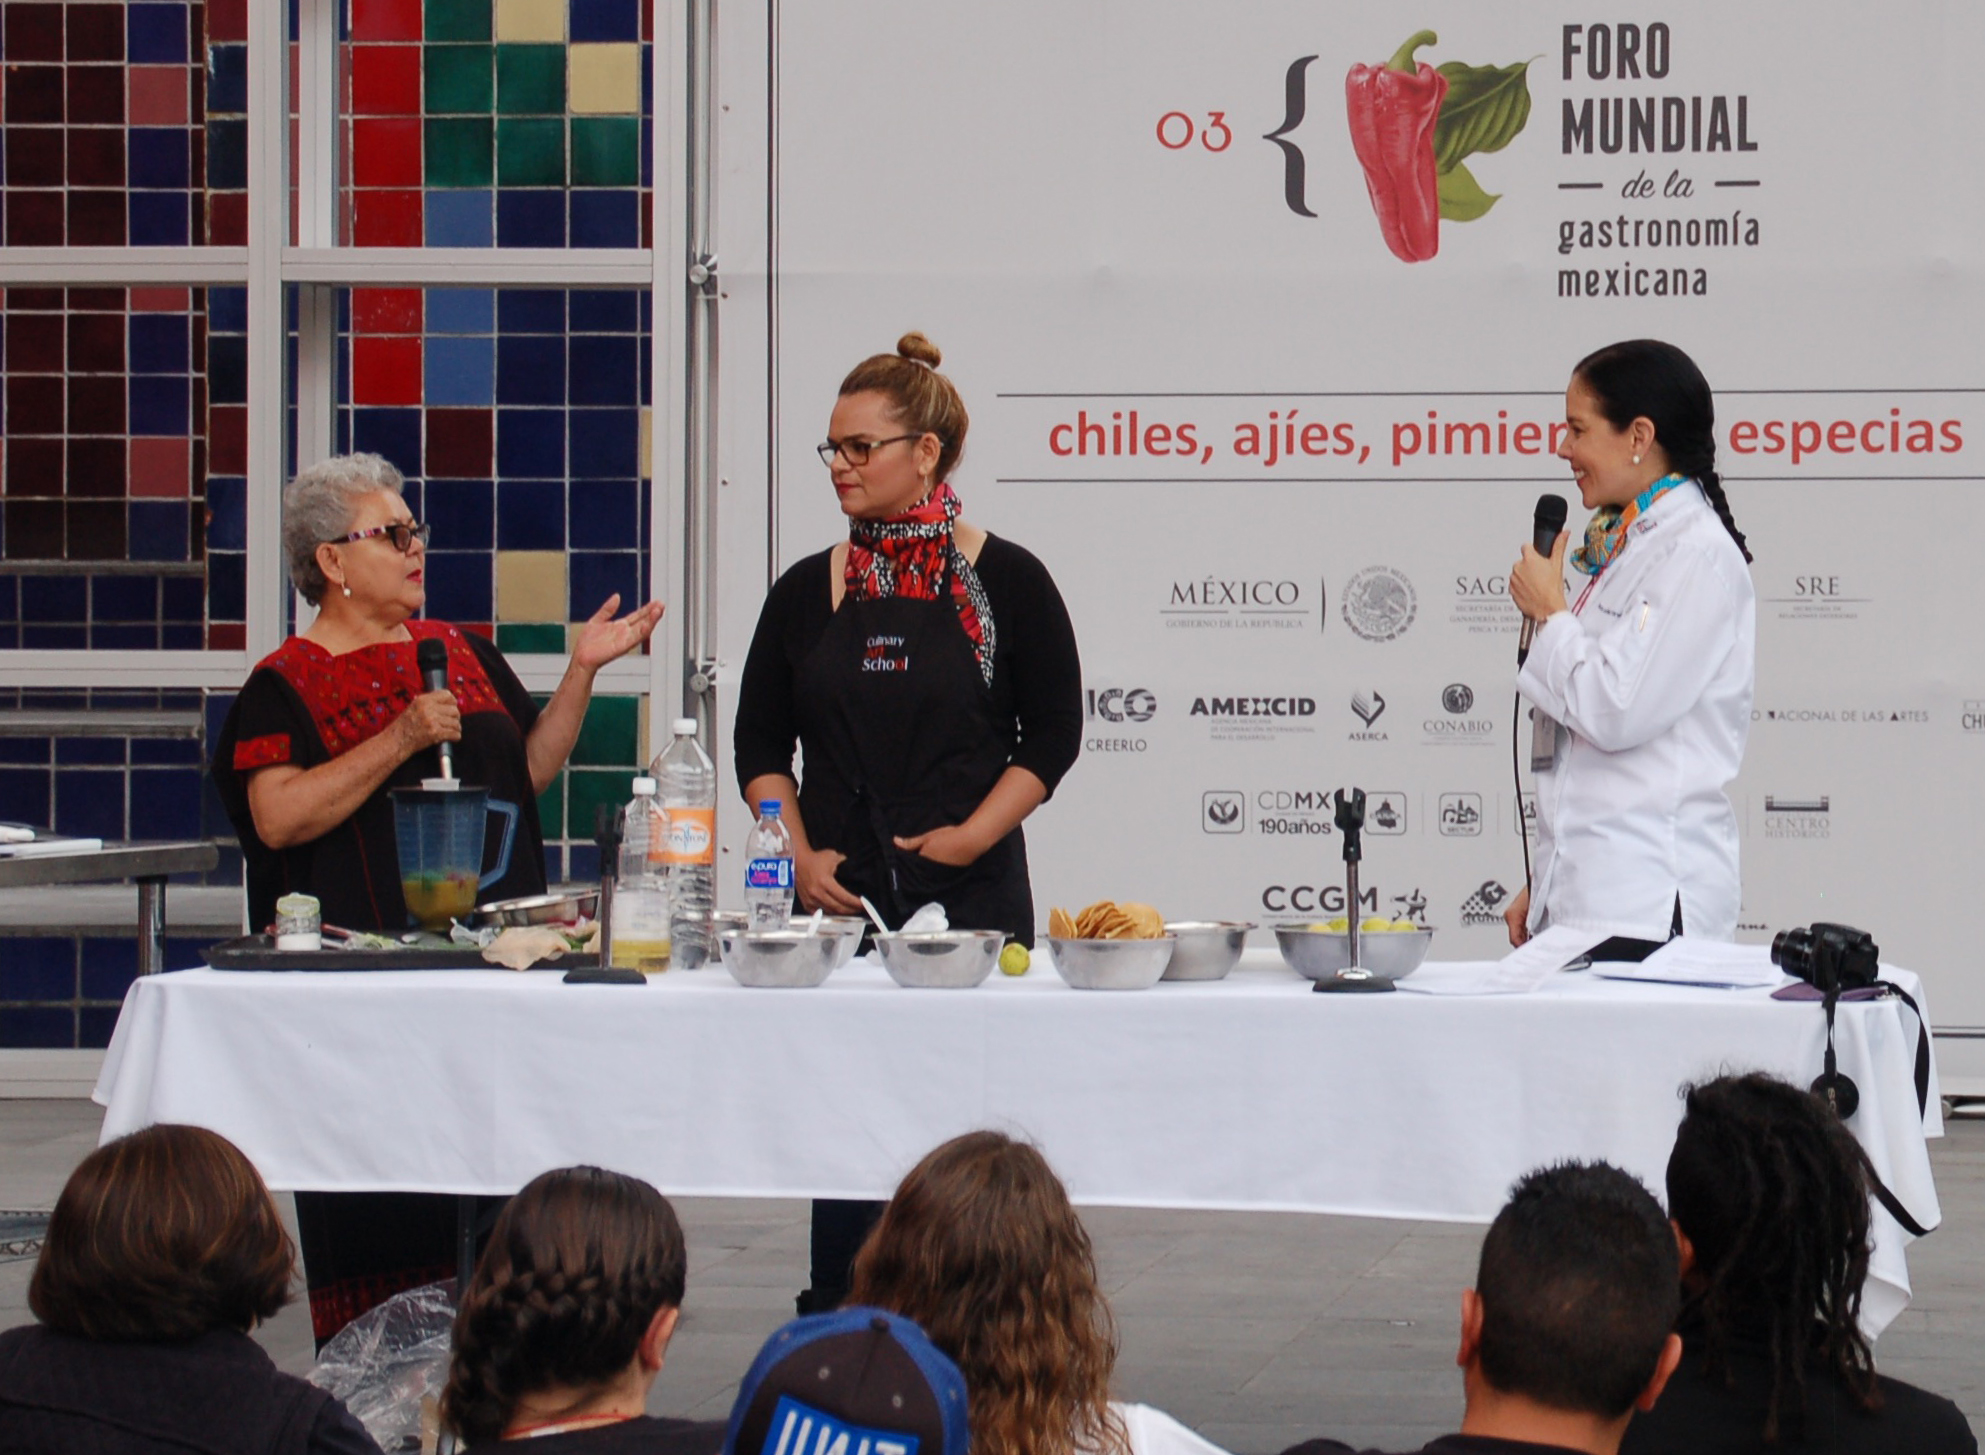 Sabina Bandera, MariJane Watson and Ana Laura Martînez discuss and prepare regional salsas at FMGM 2015, Mexico City, Mexico